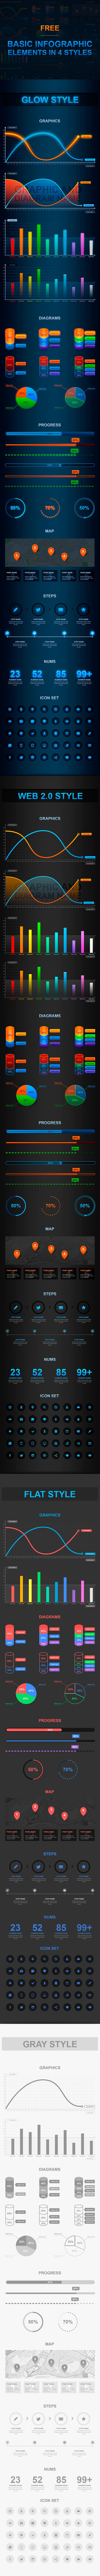 Free Infographic Elements in 4 Styles ( flat,glow,gray,web2.0 )